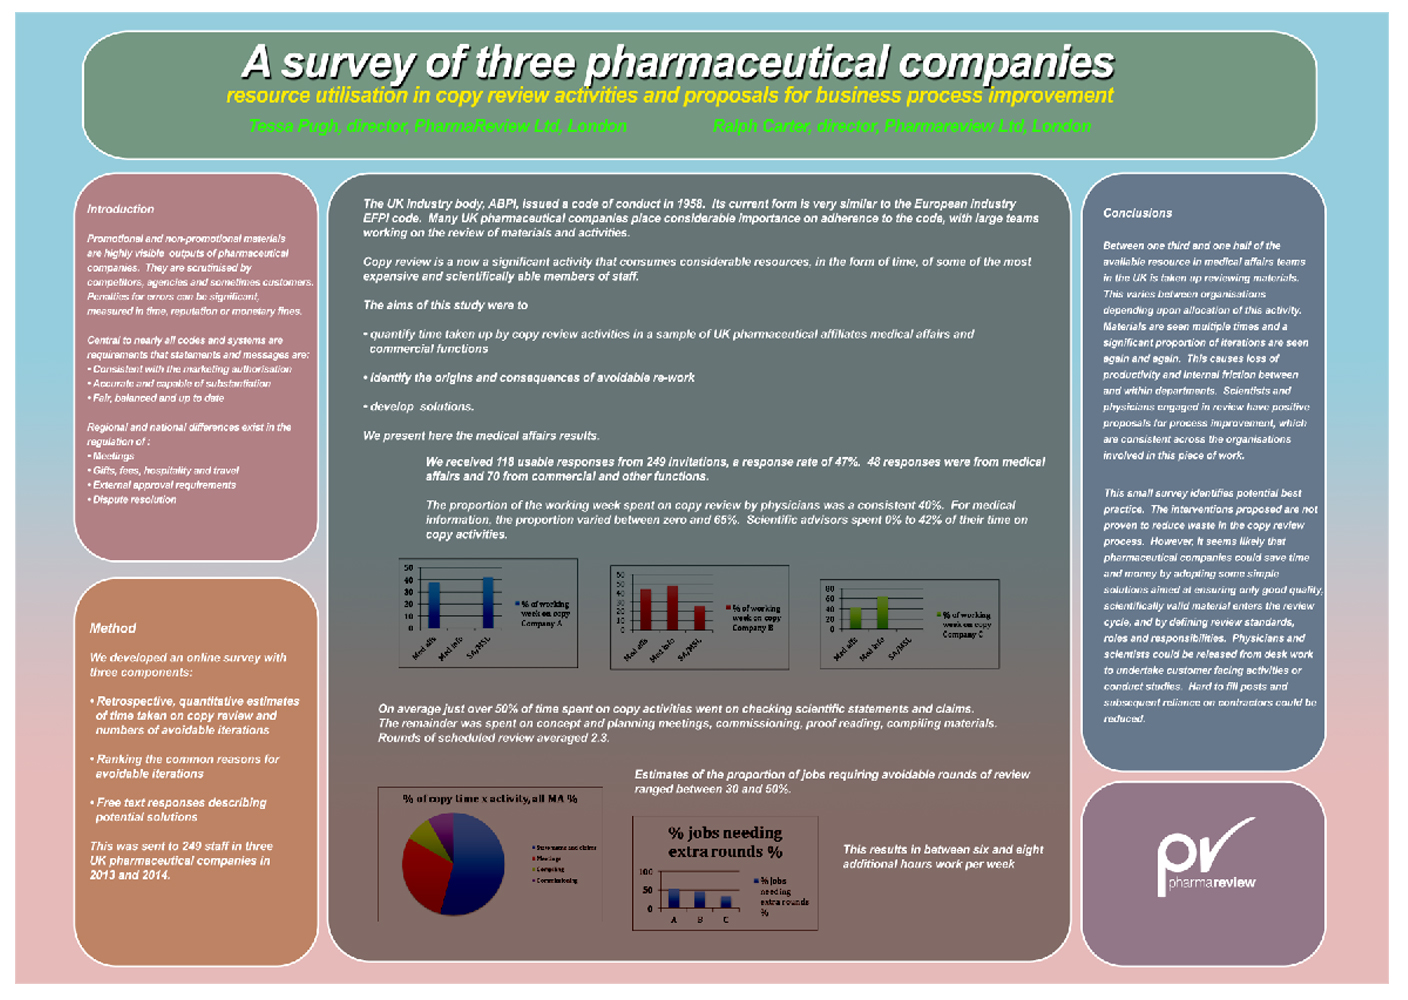 Poster design academic - Poster Design By Samsongrfx For Pharma Compliance Business Needs An Eye Catching Academic Poster Design